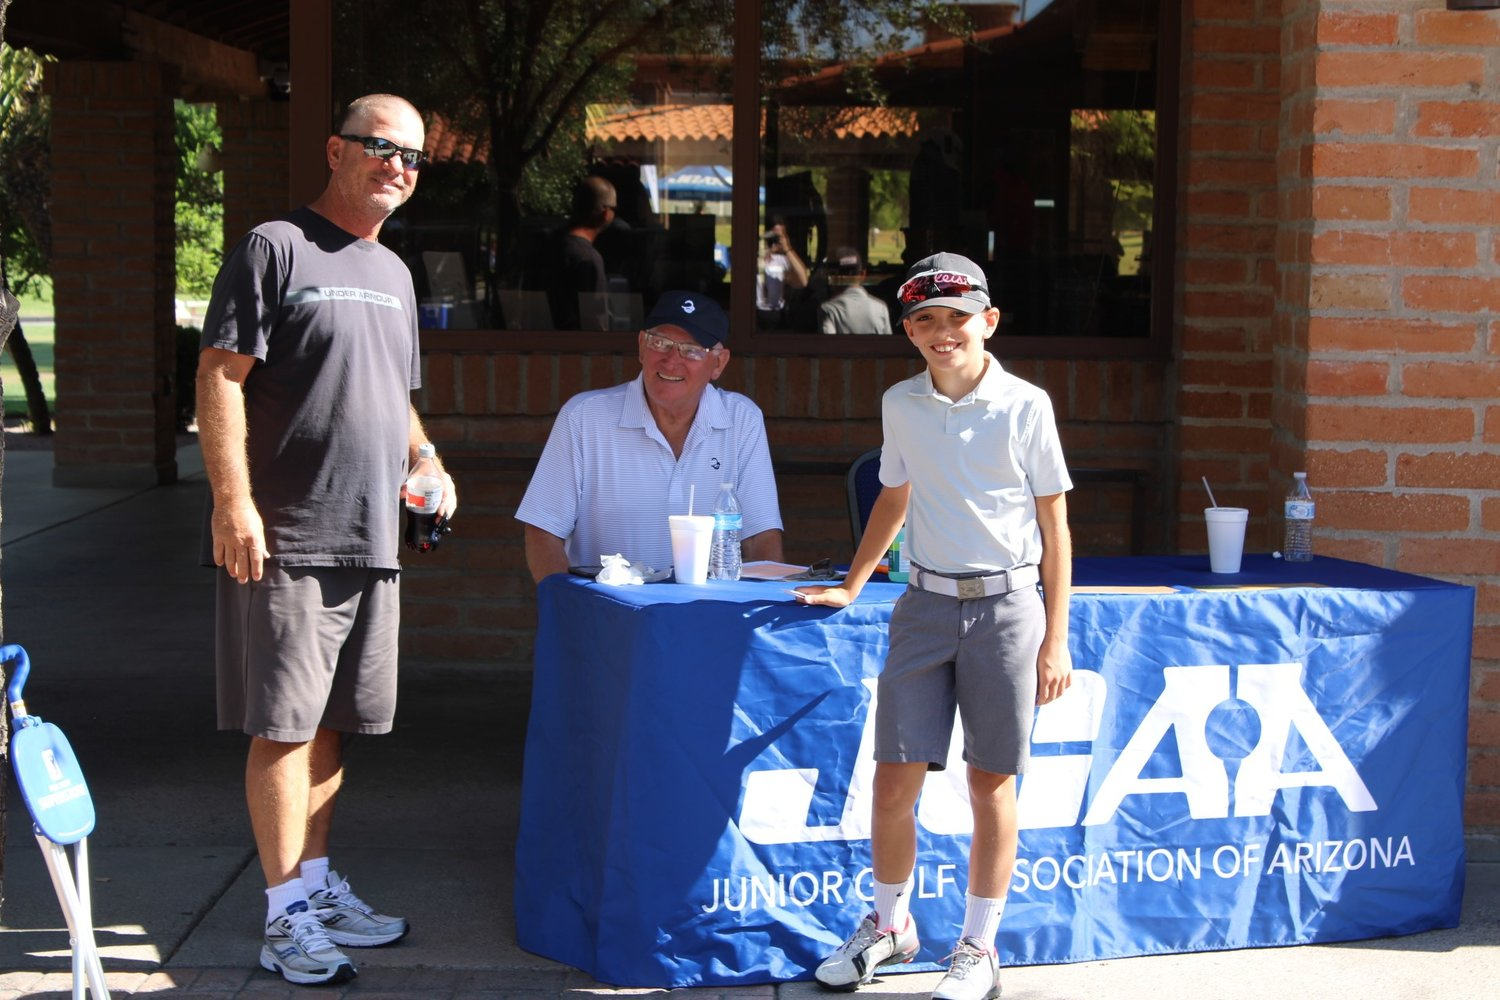 A view of the Junior Golf Association of Arizona at the Tucson City Junior Championships held earlier this calendar year.